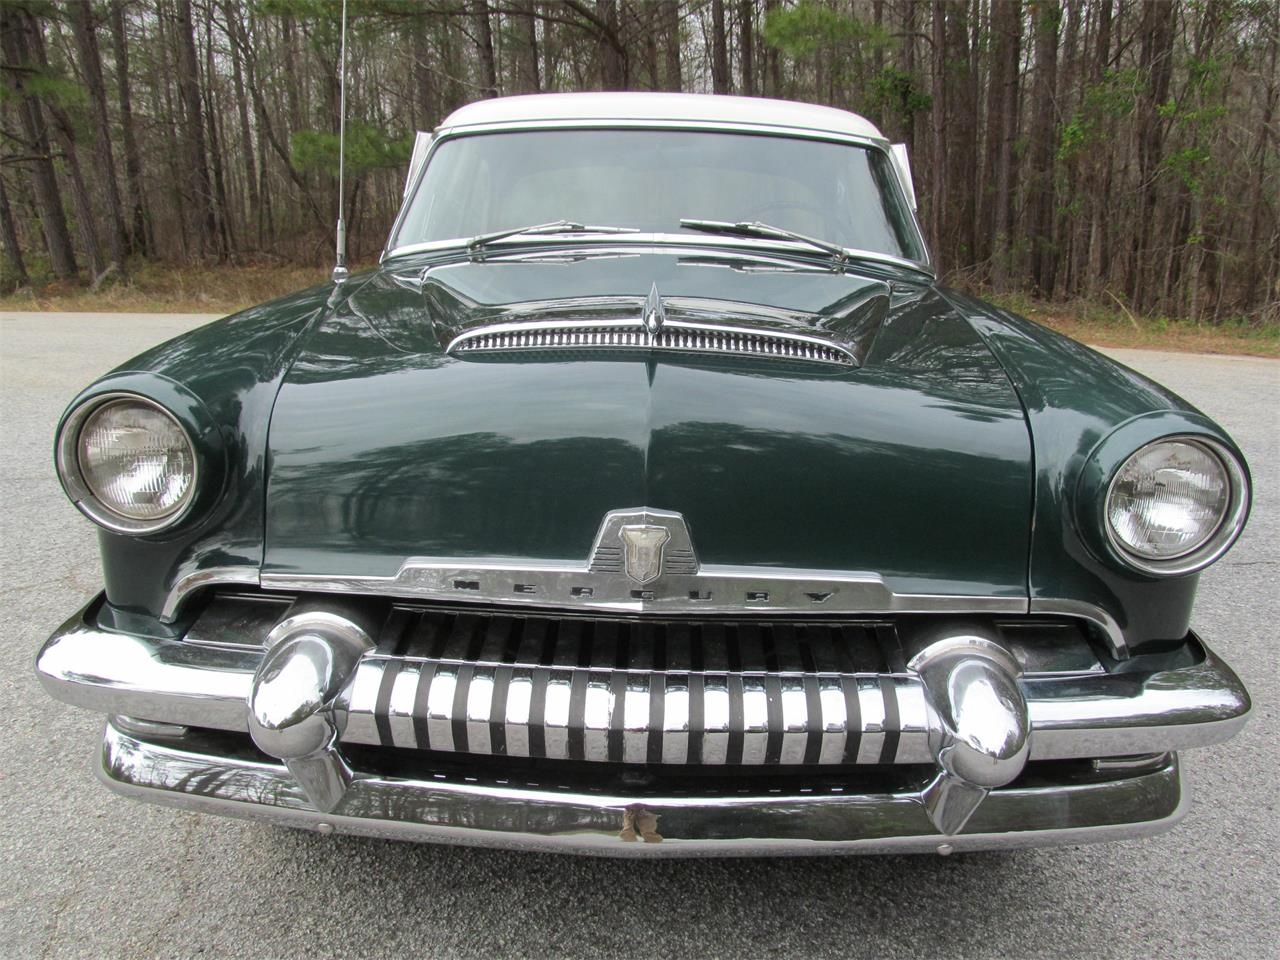 Large Picture of Classic 1954 Mercury Monterey located in Georgia - $24,900.00 Offered by Peachtree Classic Cars - N46J